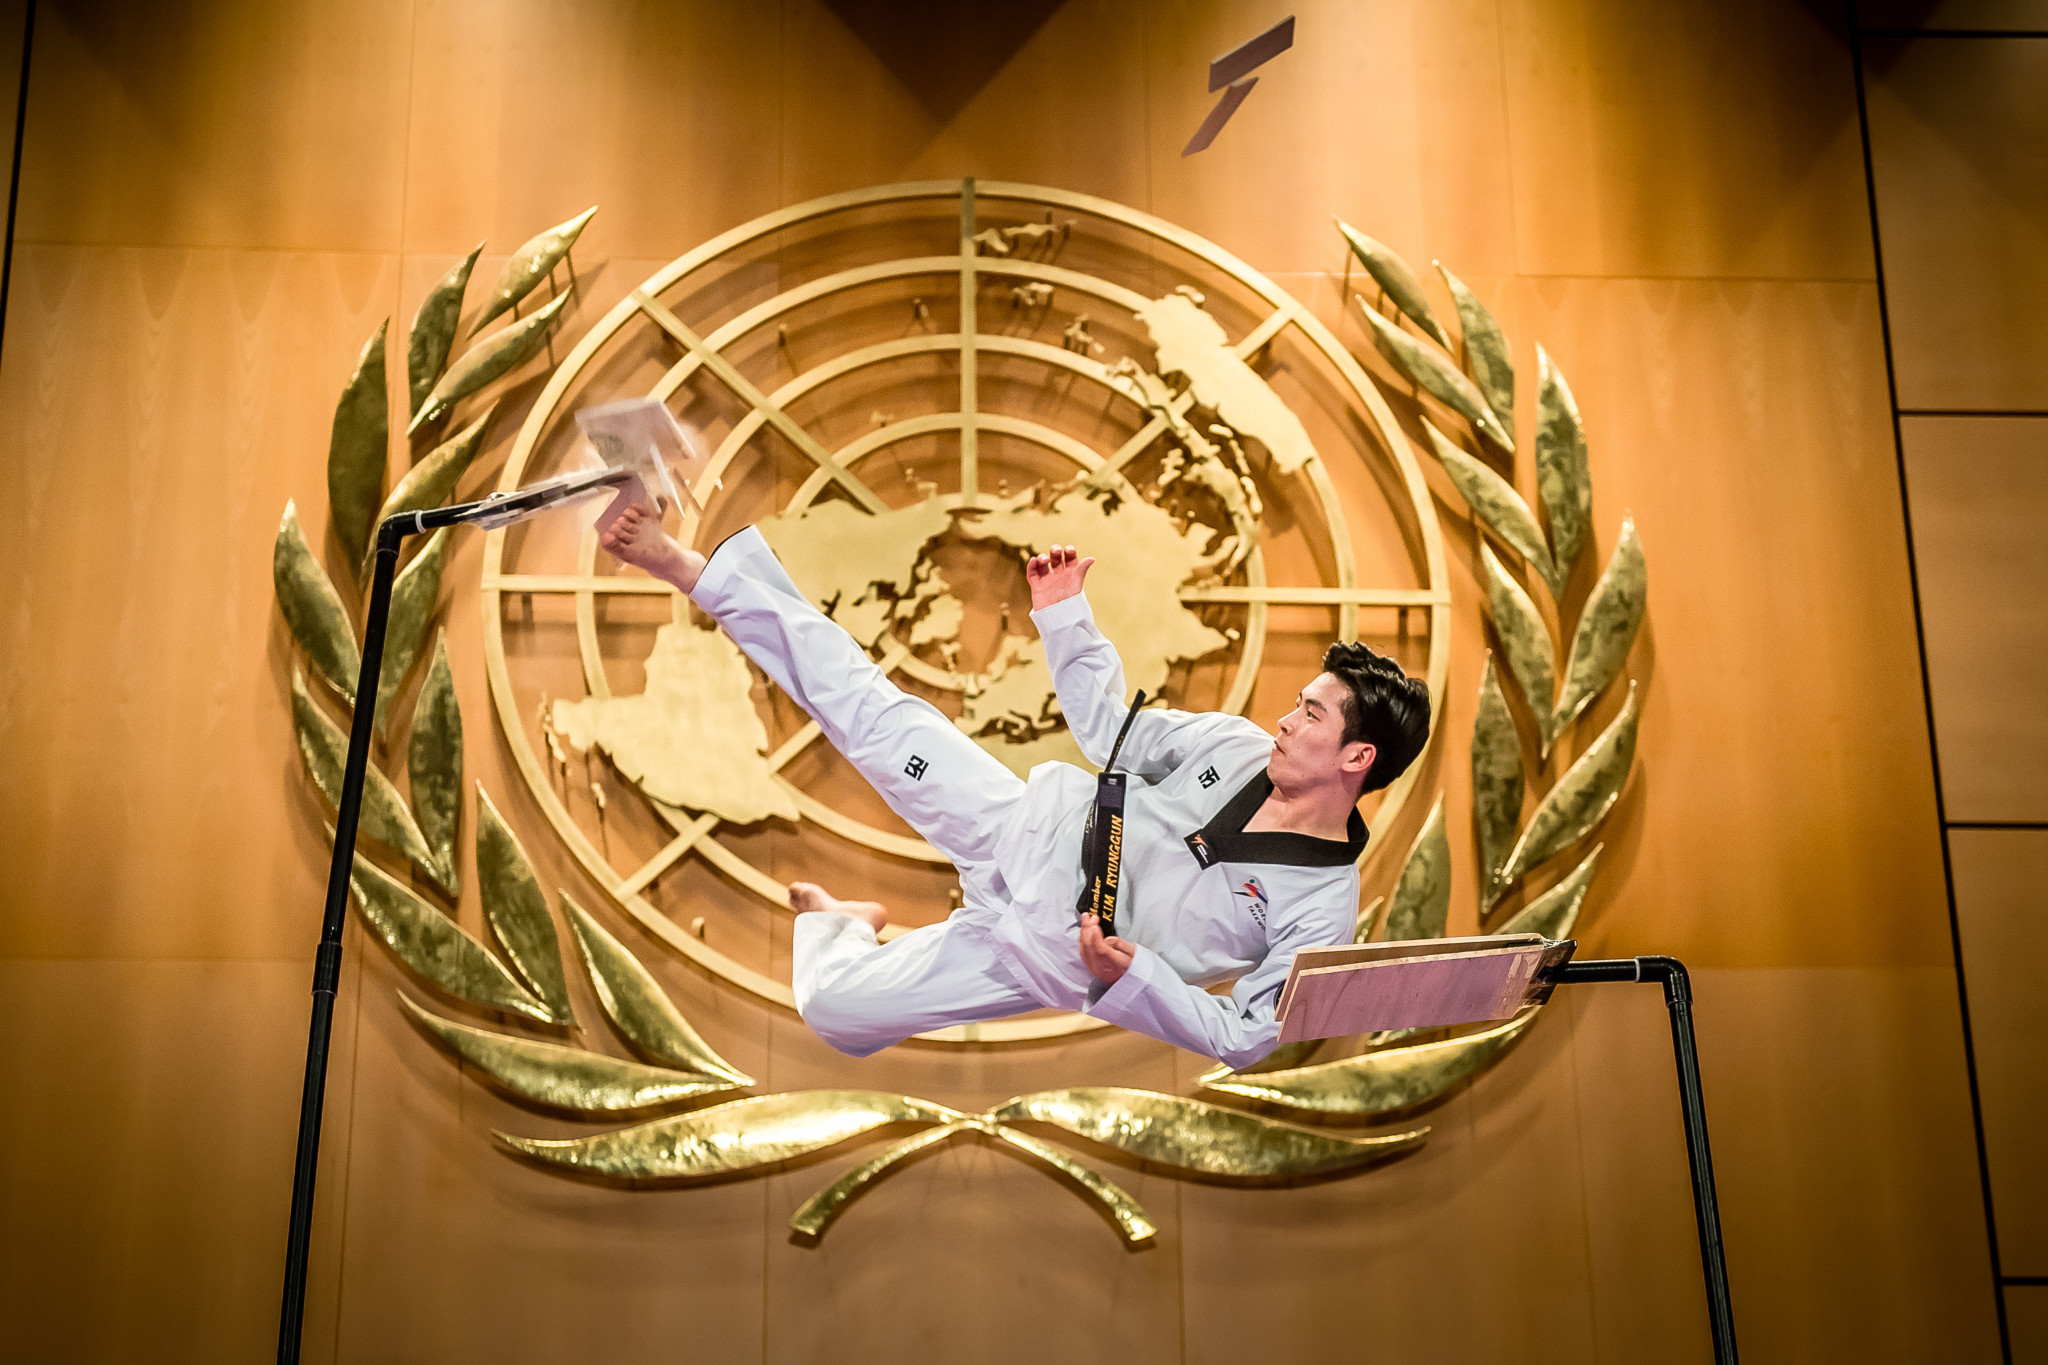 WT and ITF concluded a week of joint demonstrations at the UN Geneva office ©World Taekwondo